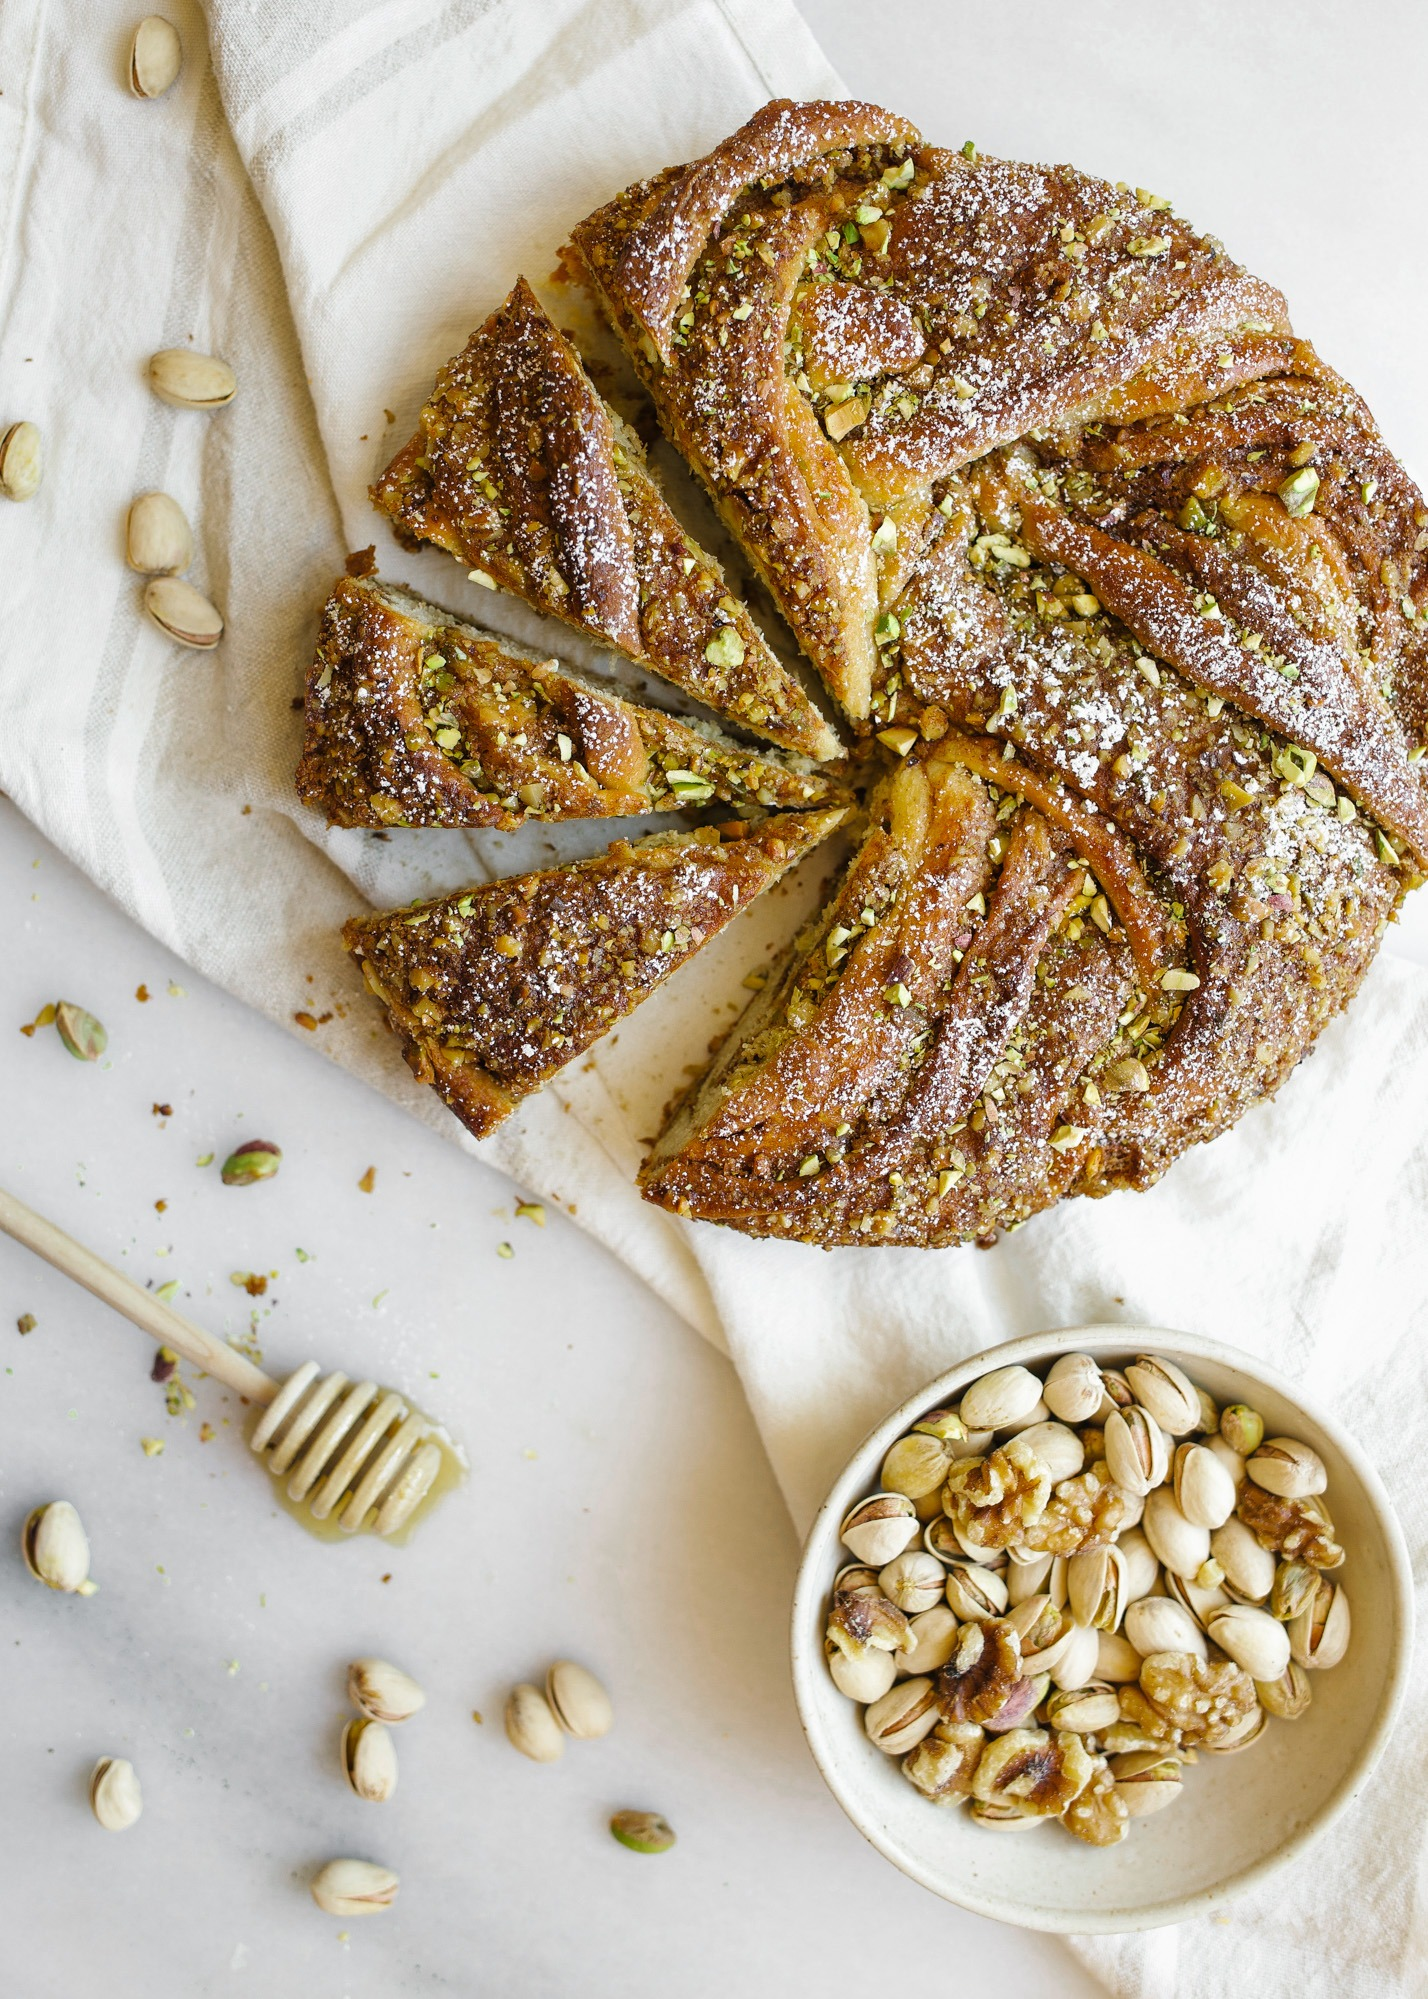 Braided Baklava Brioche by Wood and Spoon. This is a wreath loaf inspired by the meditteranean dessert filled with cinnamon, honey, walnuts, and pistachios. The yeast dough is sweetened with brown sugar and honey syrup and the crunchy nut filling adds flavor and texture. Heat up warm slices as a dessert or for breakfast. Learn more and how to braid the bread on thewoodandspoon.com